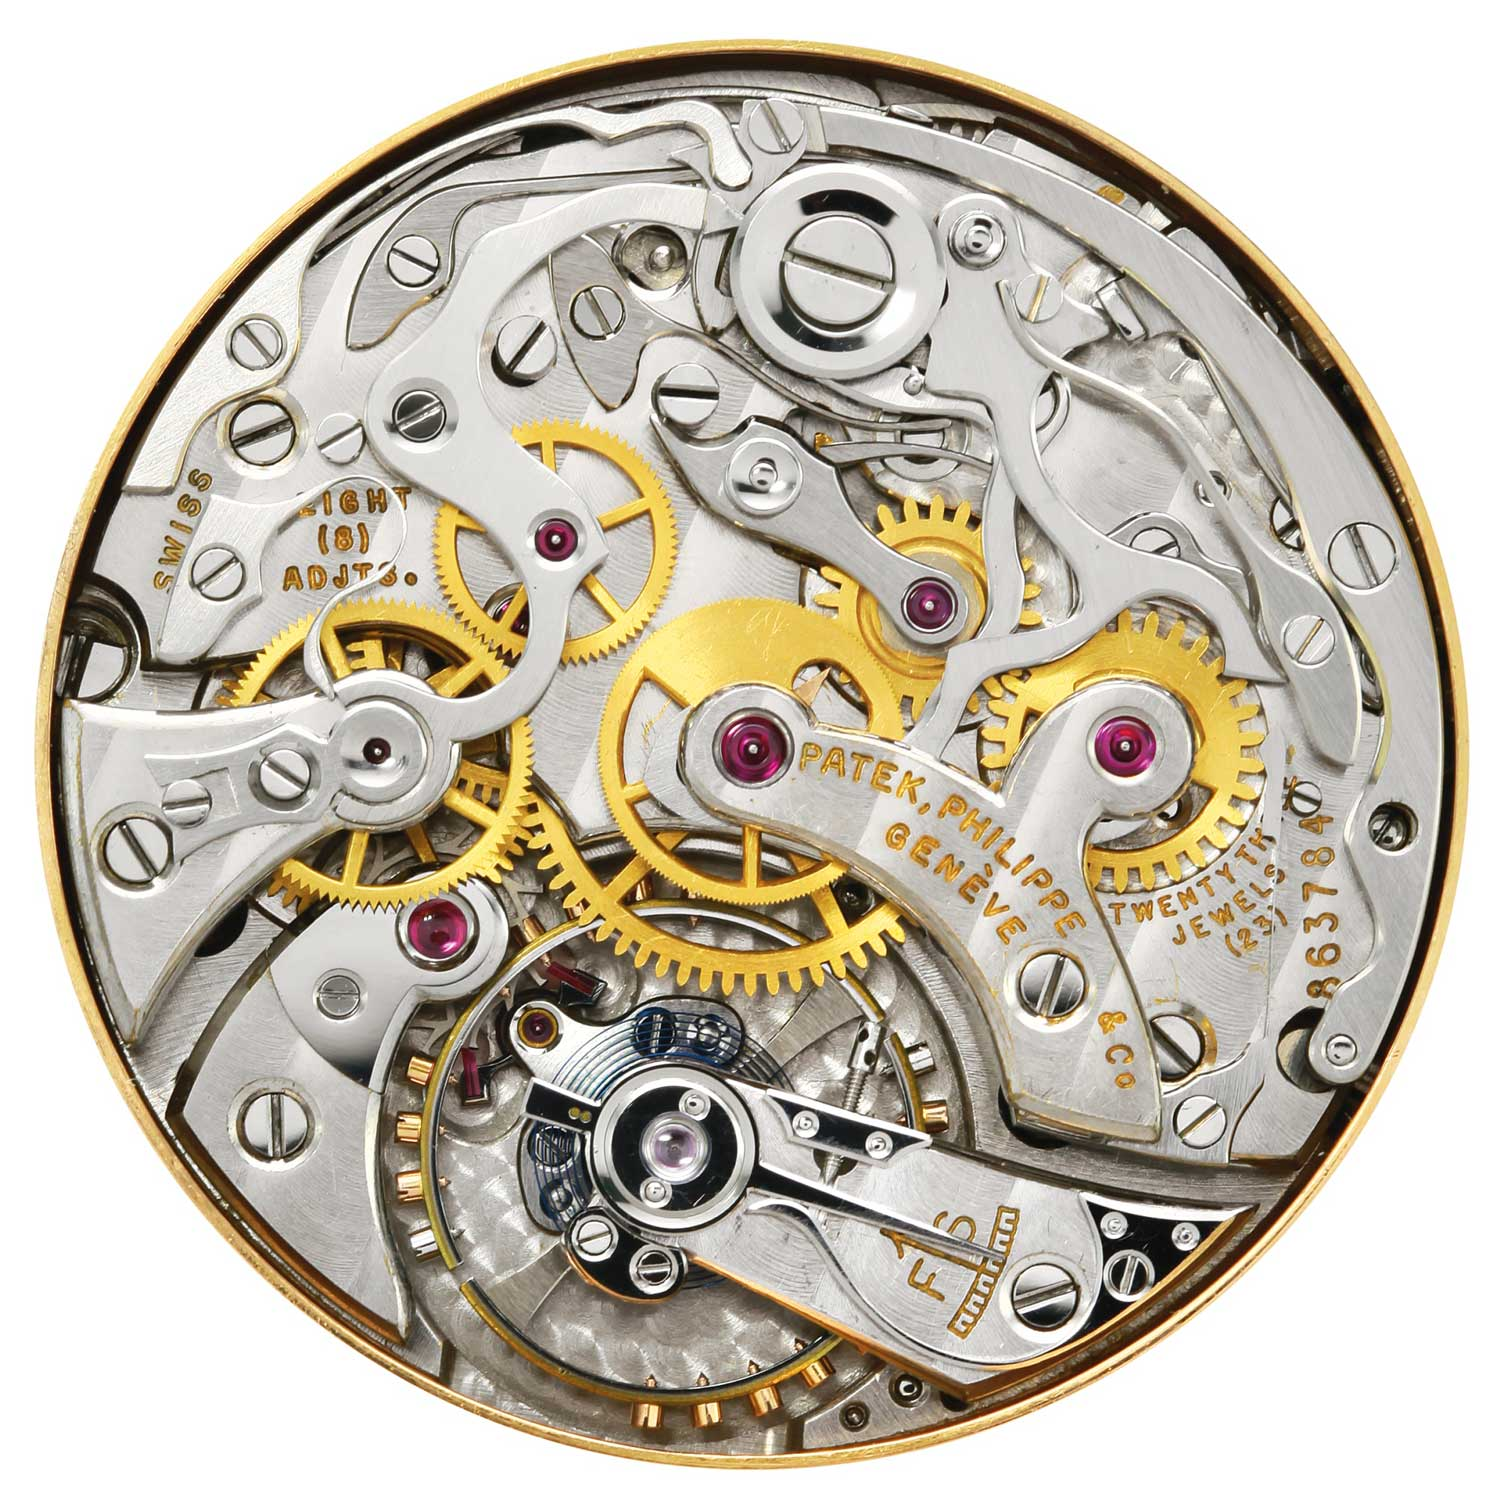 Close up of the cal. 13''' manual winding nickel lever movement powering the 1948 Patek Philippe ref. 1579 pink gold chronograph with silvered dial, gold applied Arabic numerals and enamelled baton indexes (Image: Sothebys.com)